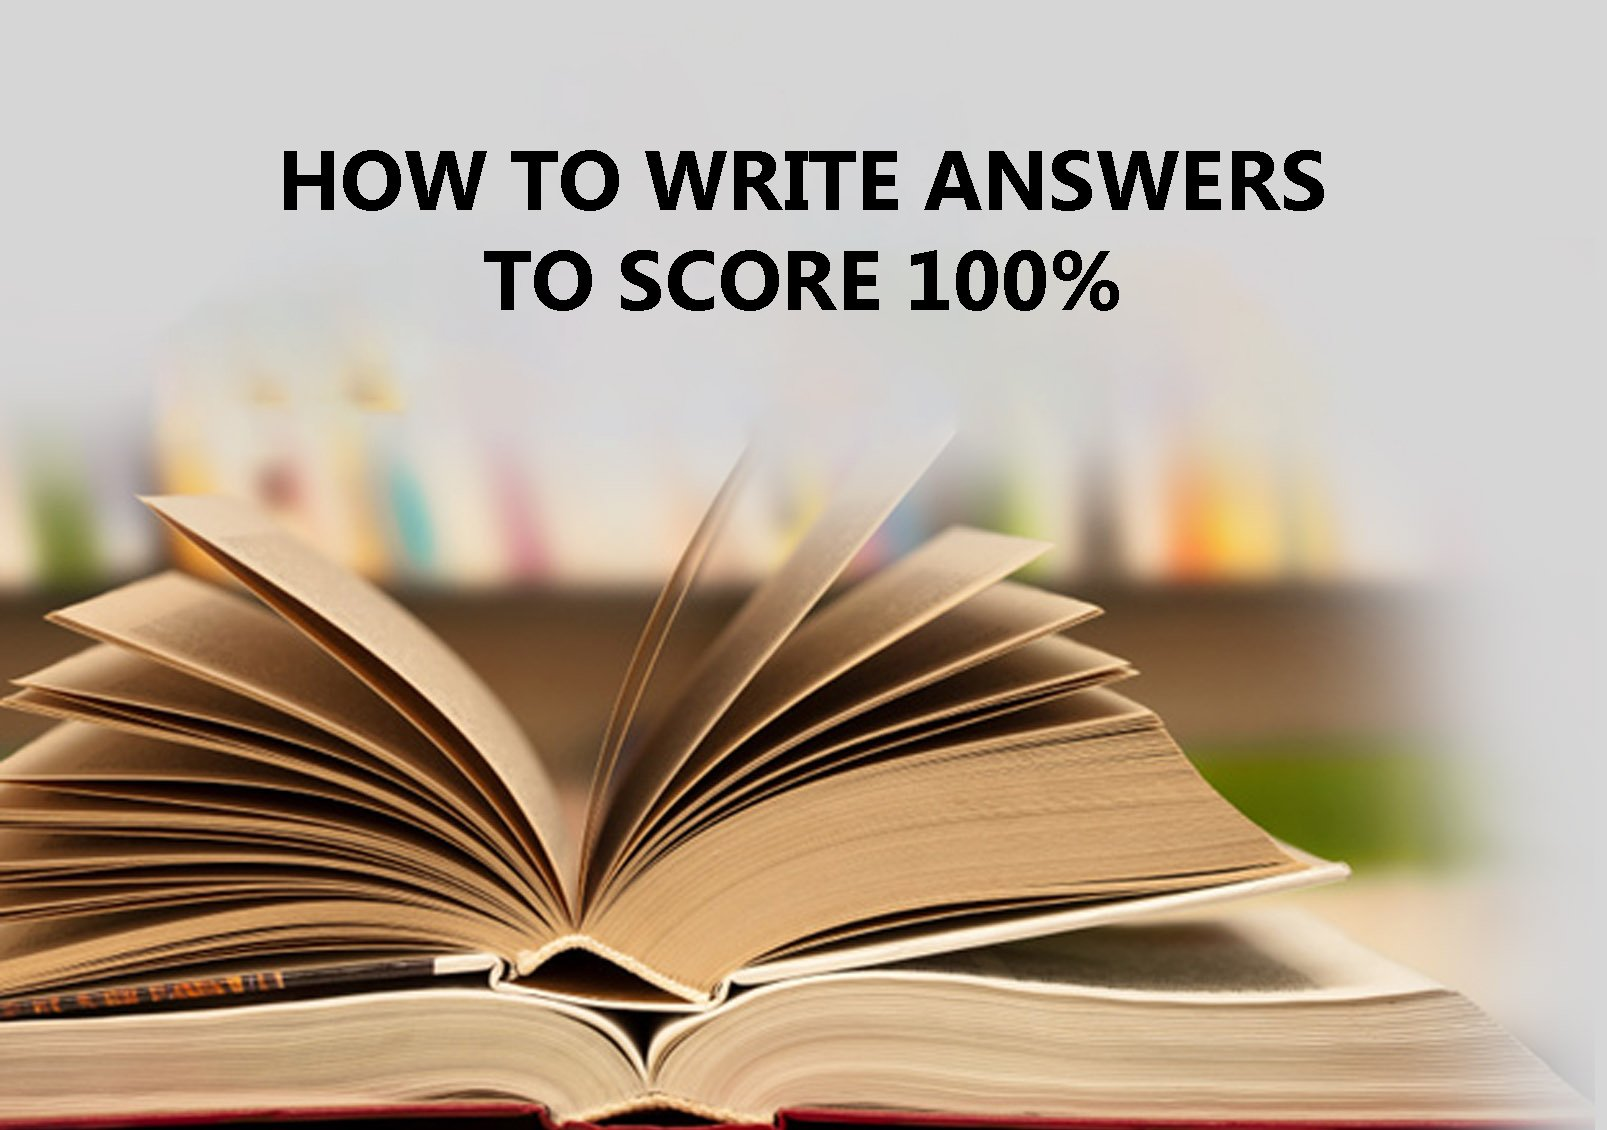 How to write answers to score 100%